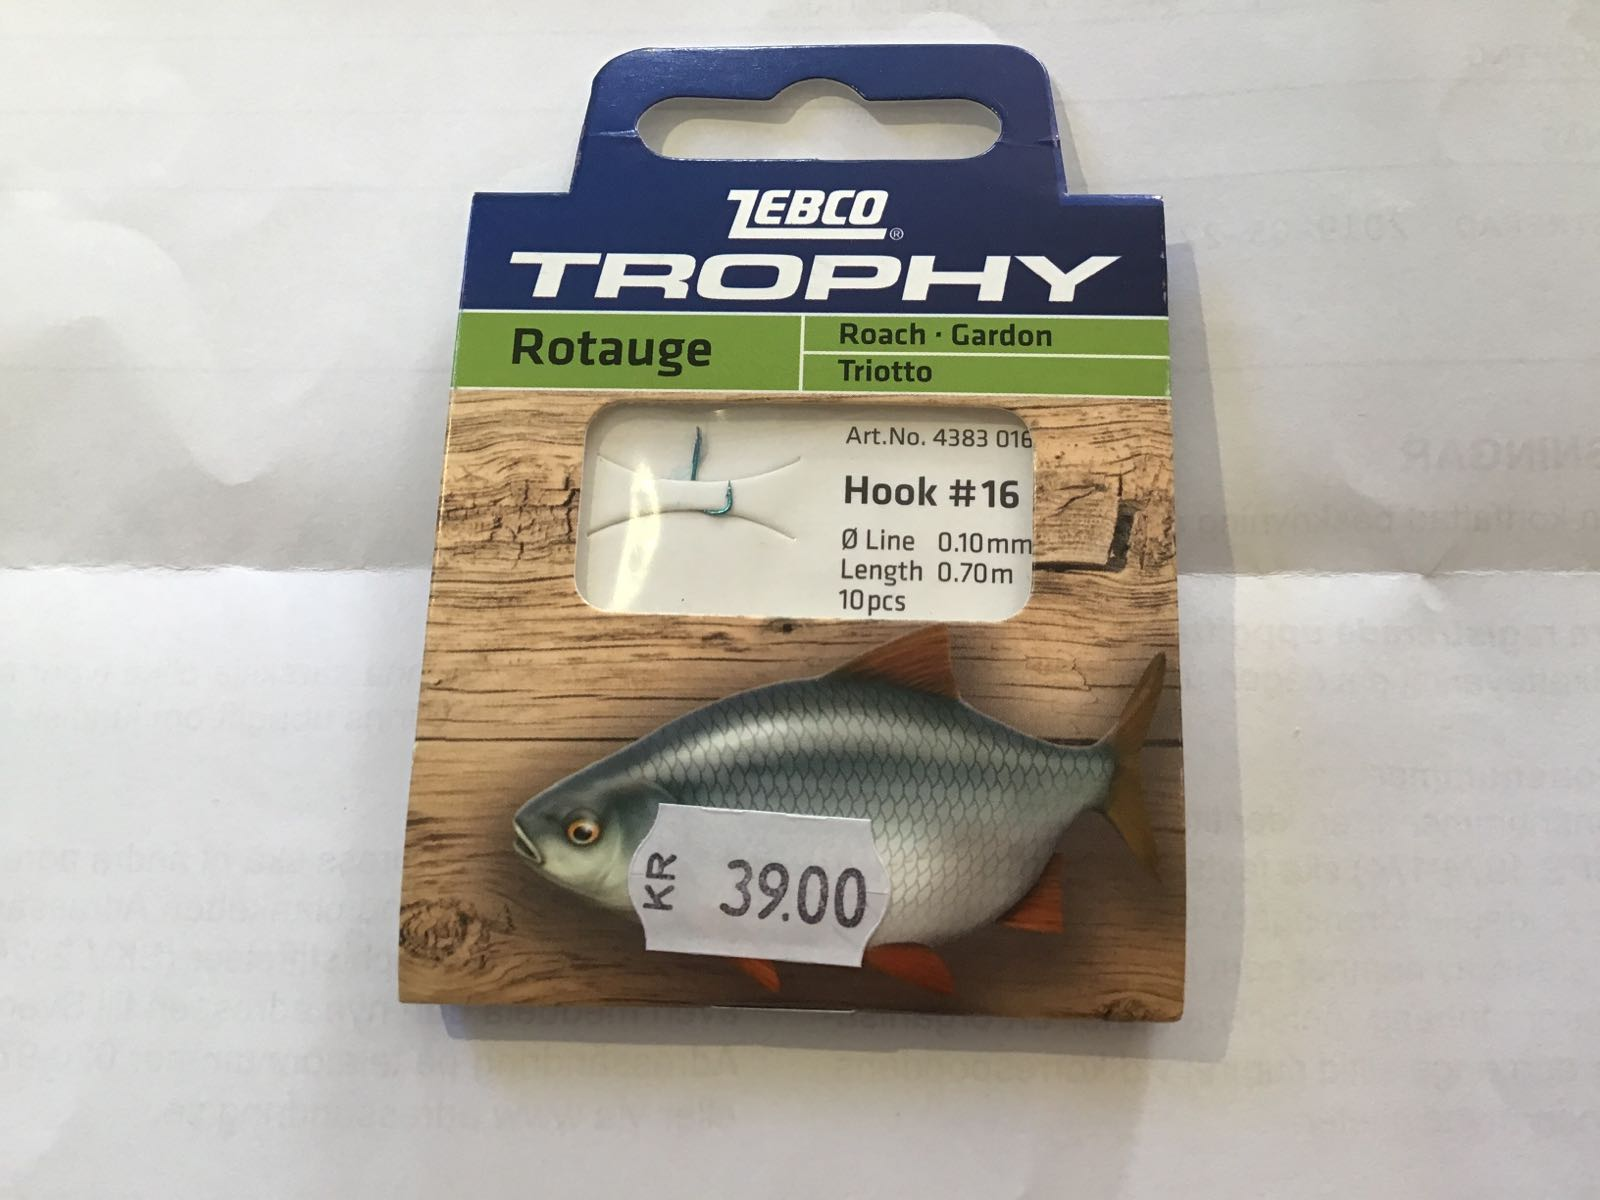 Zebco trophy roach hook-to-nylon #16